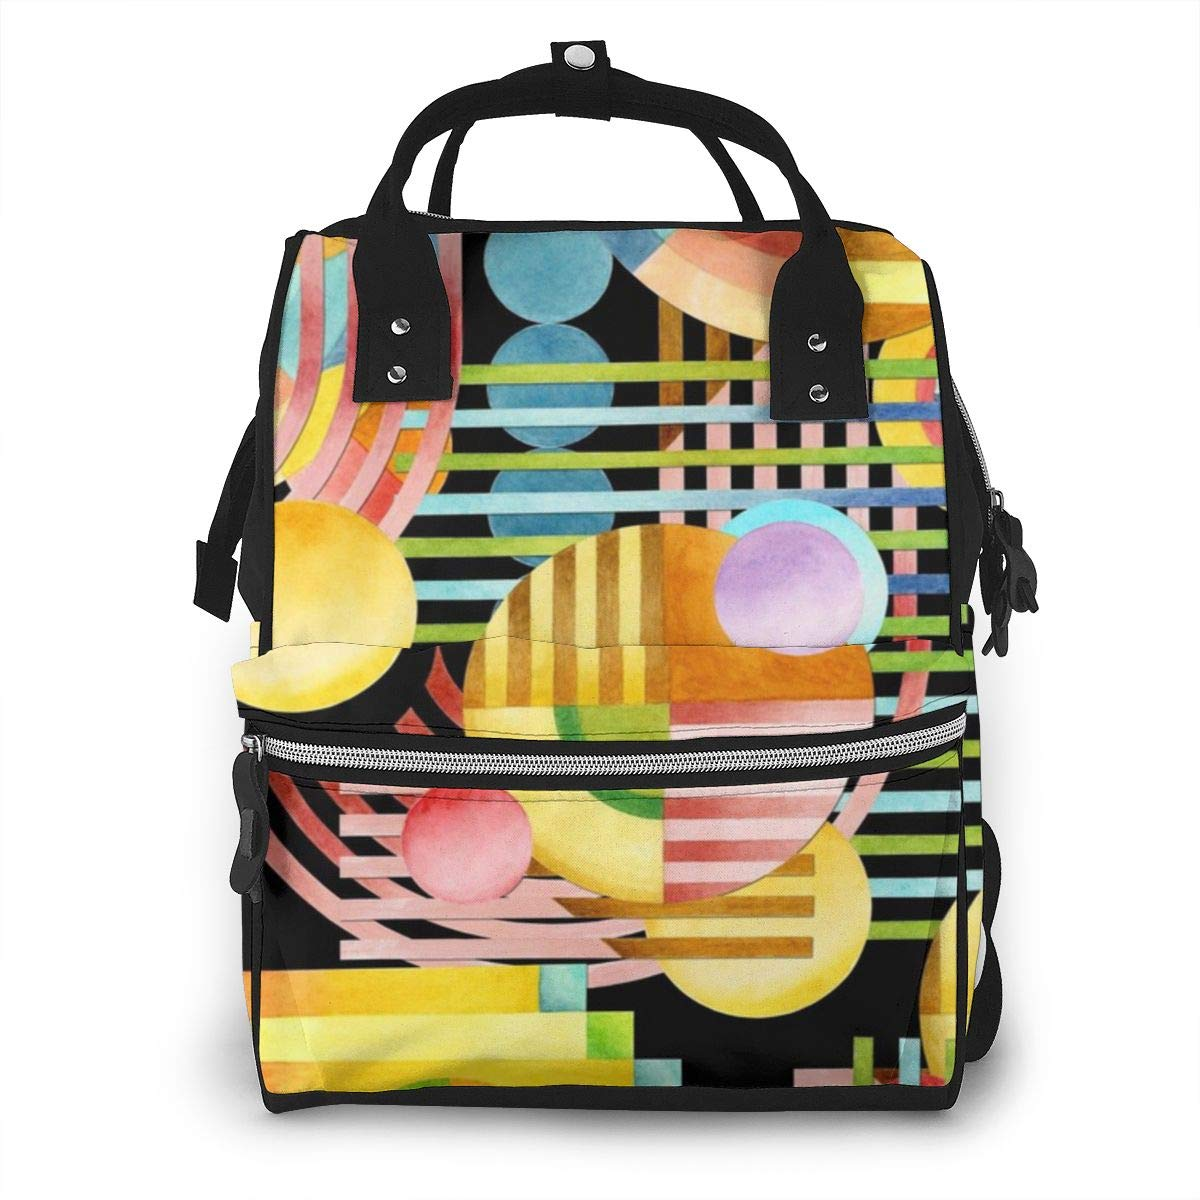 Art Deco Maximalist Fashion Diaper Bags Mummy Backpack Multi Functions Waterproof Large Capacity Nappy Bag Nursing Bag for Baby Care for Traveling